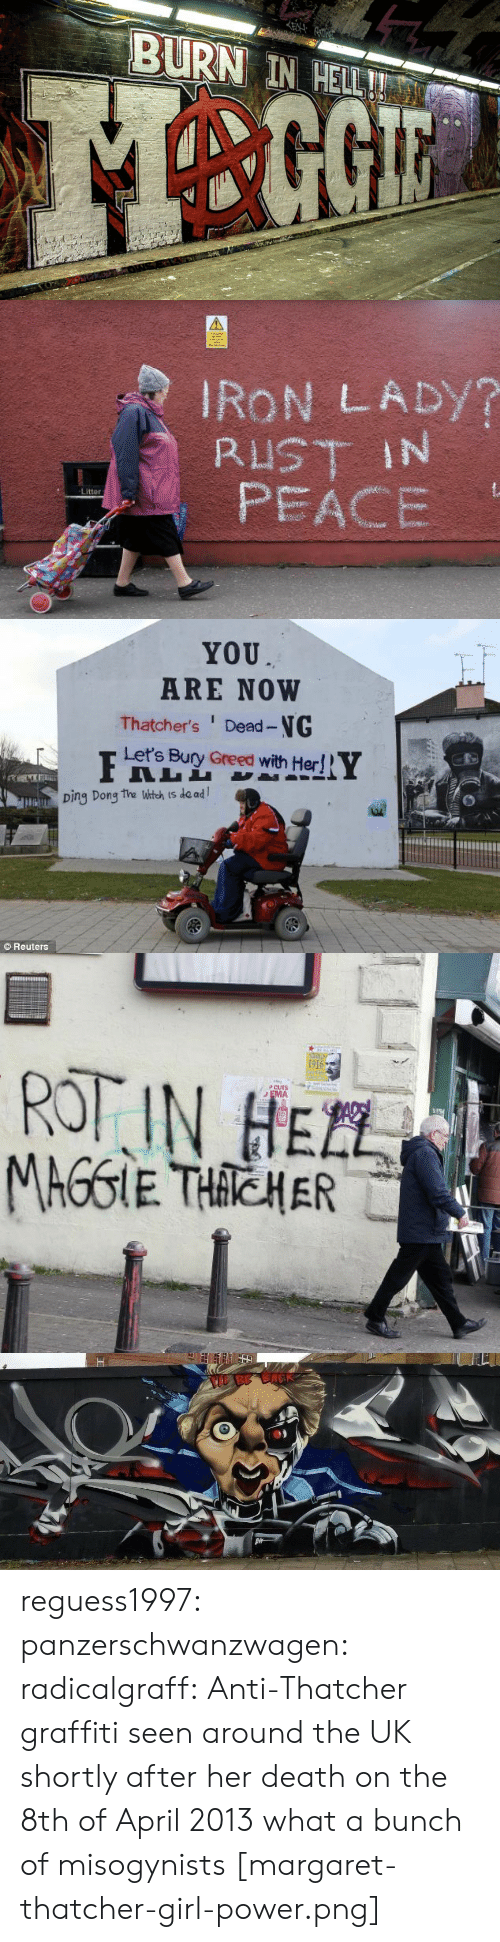 Margaret: EN  BURN IN HELL!   IRON LADY?  RUST IN  PEACE  Litter   YOU  ARE NOW  Thatcher's Dead-NG  Let's Bury Greed with Her!  Ding Dong the Witch is de ad  Reuters   1916  ROT IN HEZL  PCUTS  EMA  TEL  MAGGIE THACHER   BE BACK reguess1997:  panzerschwanzwagen:   radicalgraff: Anti-Thatcher graffiti seen around the UK shortly after her death on the 8th of April 2013 what a bunch of misogynists   [margaret-thatcher-girl-power.png]